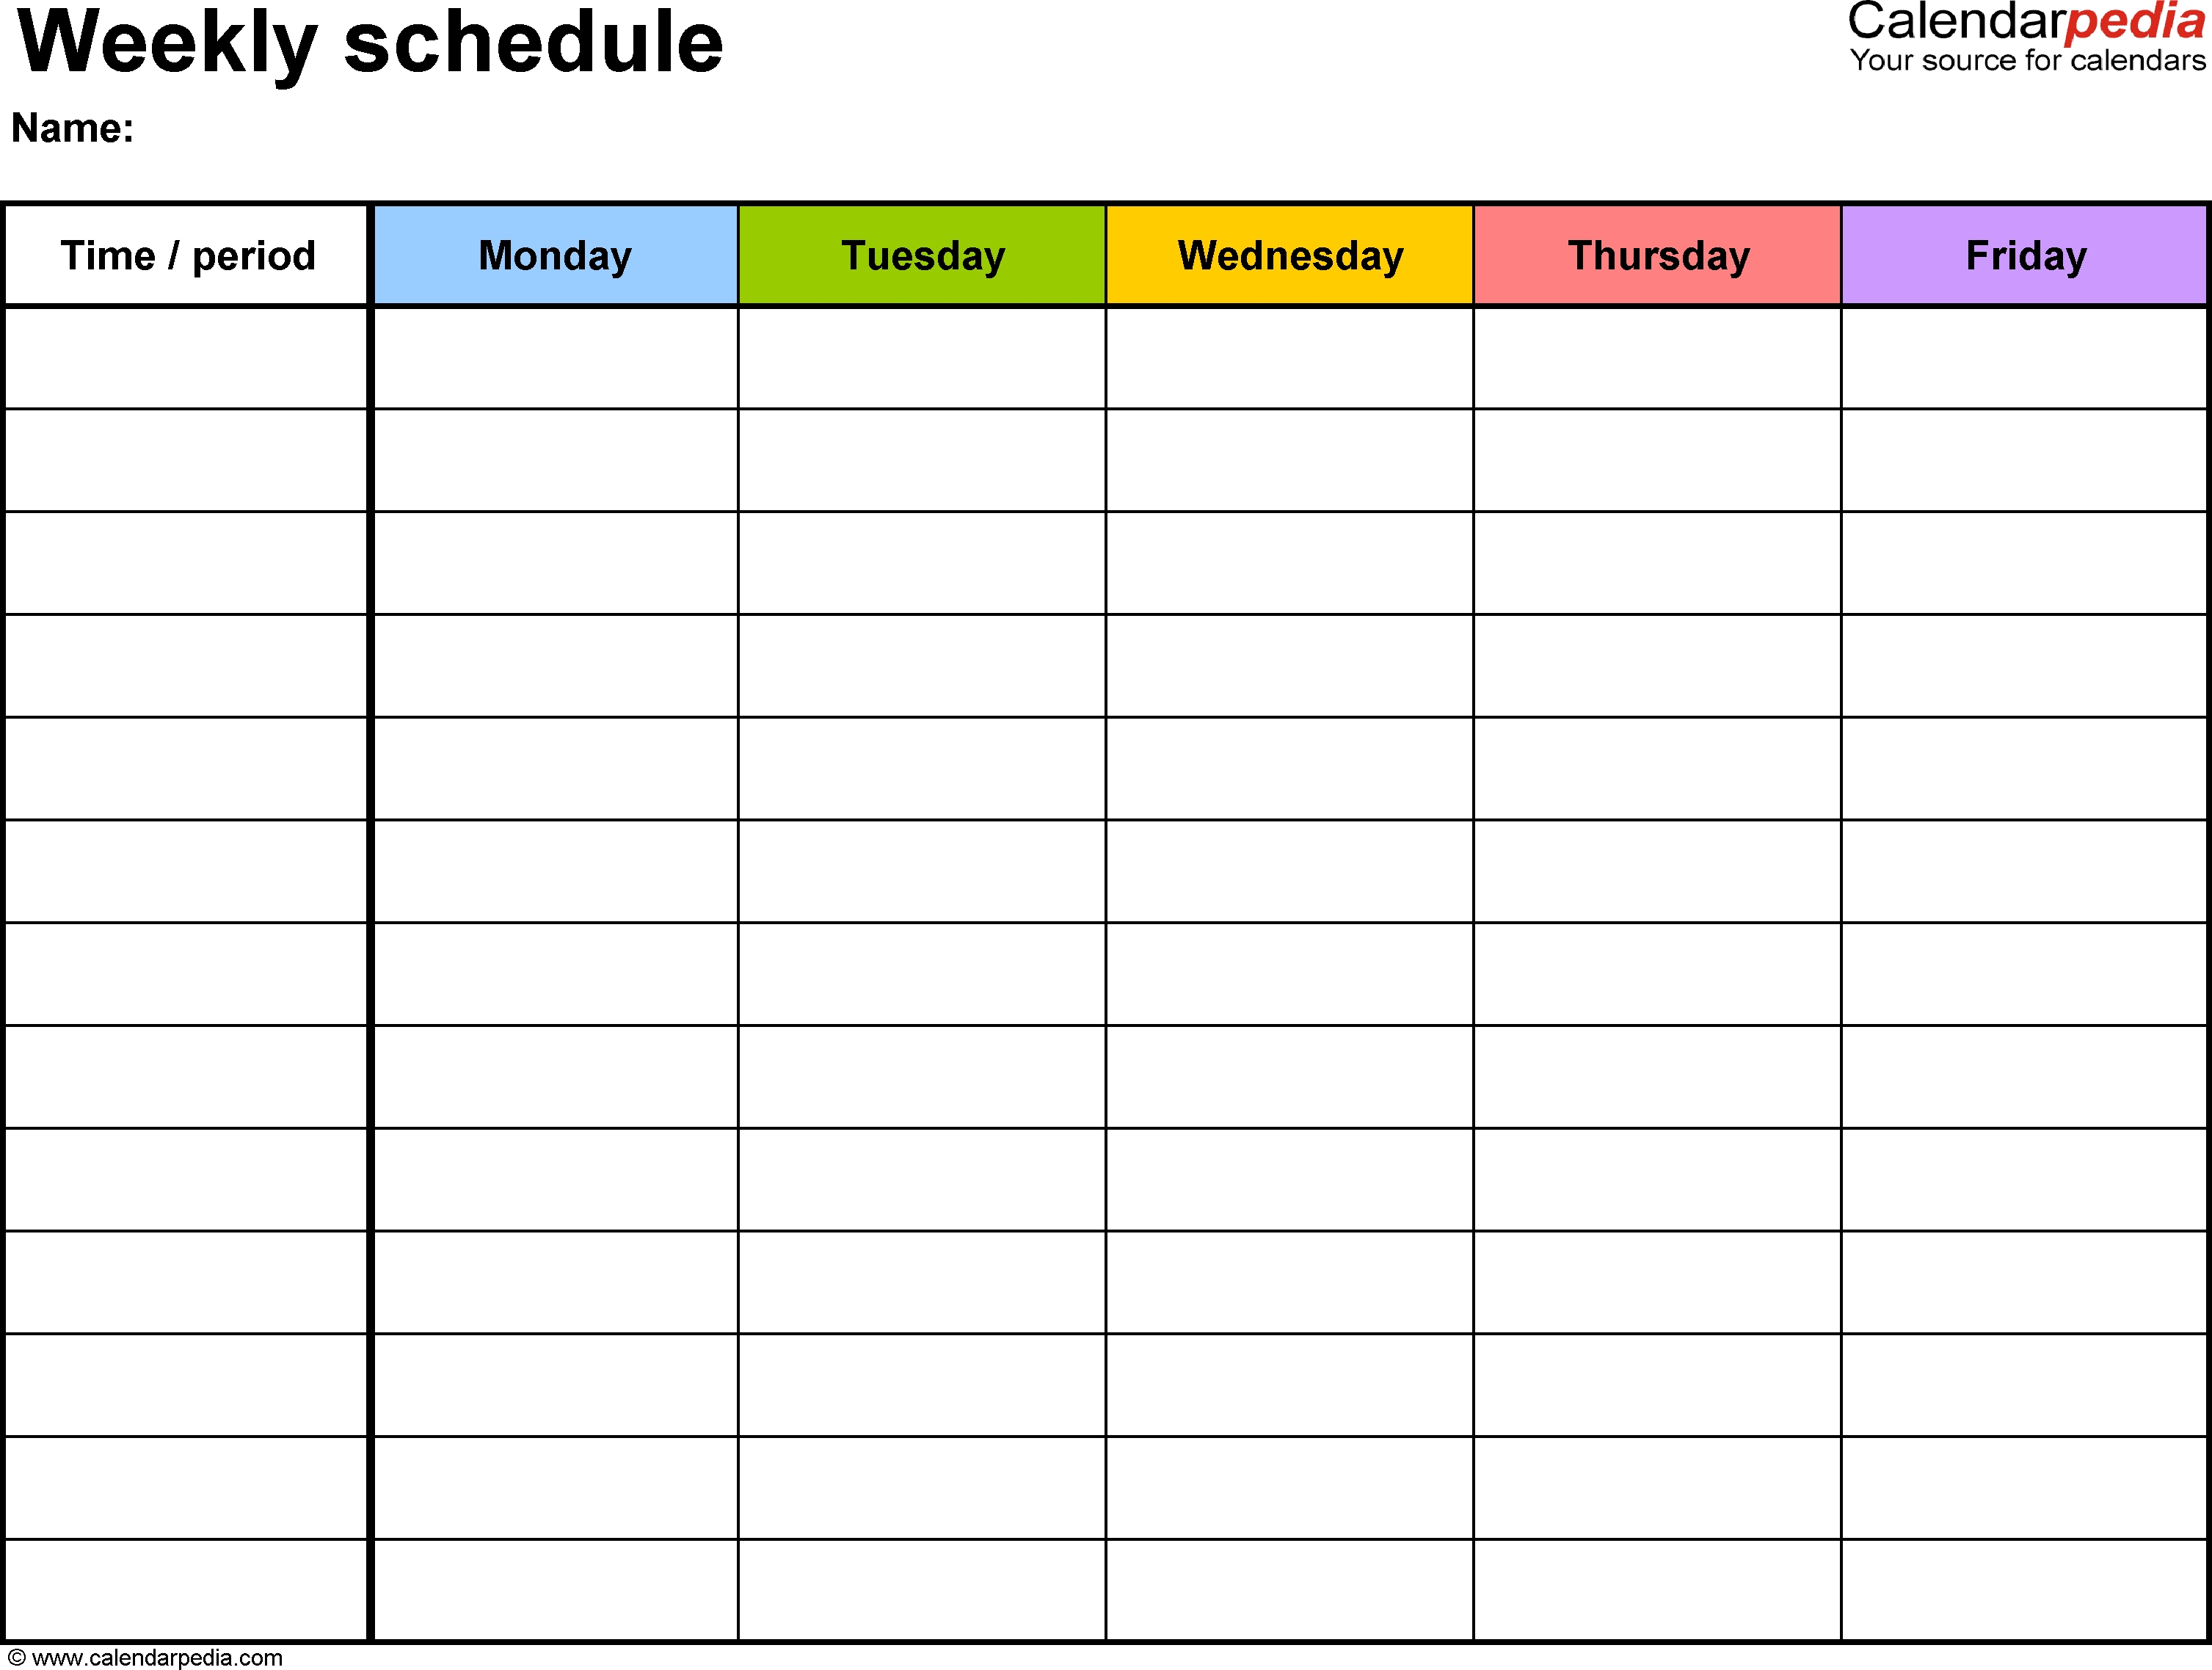 Free Weekly Schedule Templates For Word - 18 Templates for Monthly Calendar Templates Monday To Friday